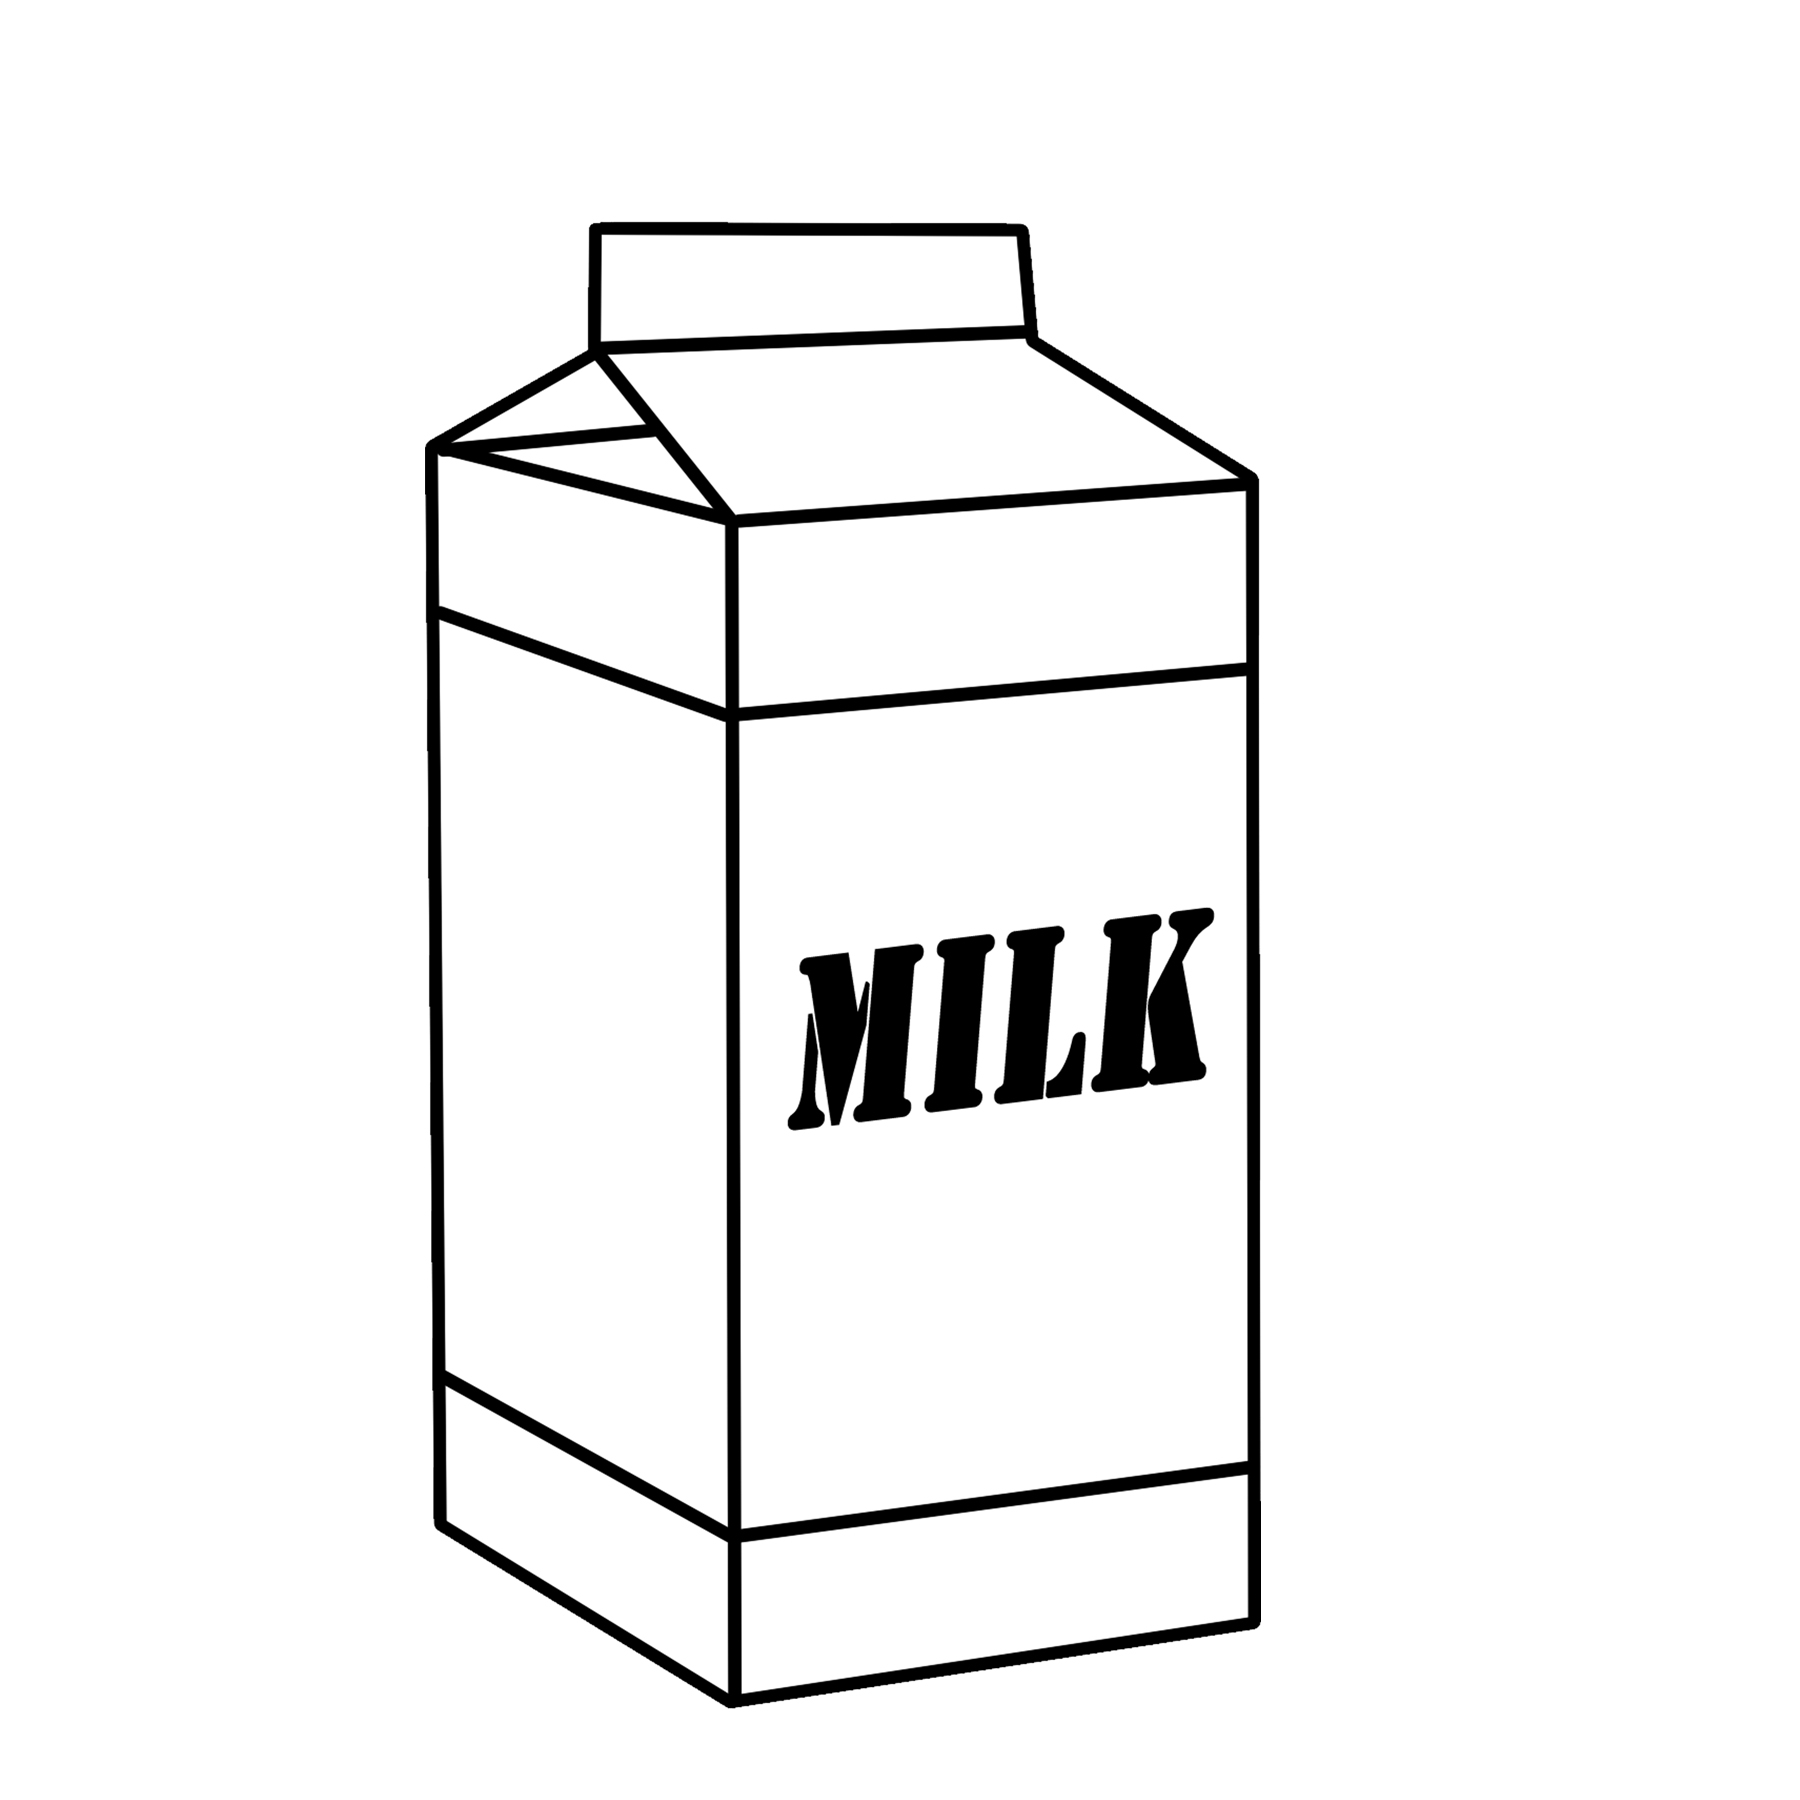 Milk clipart. Dairy graphics free by